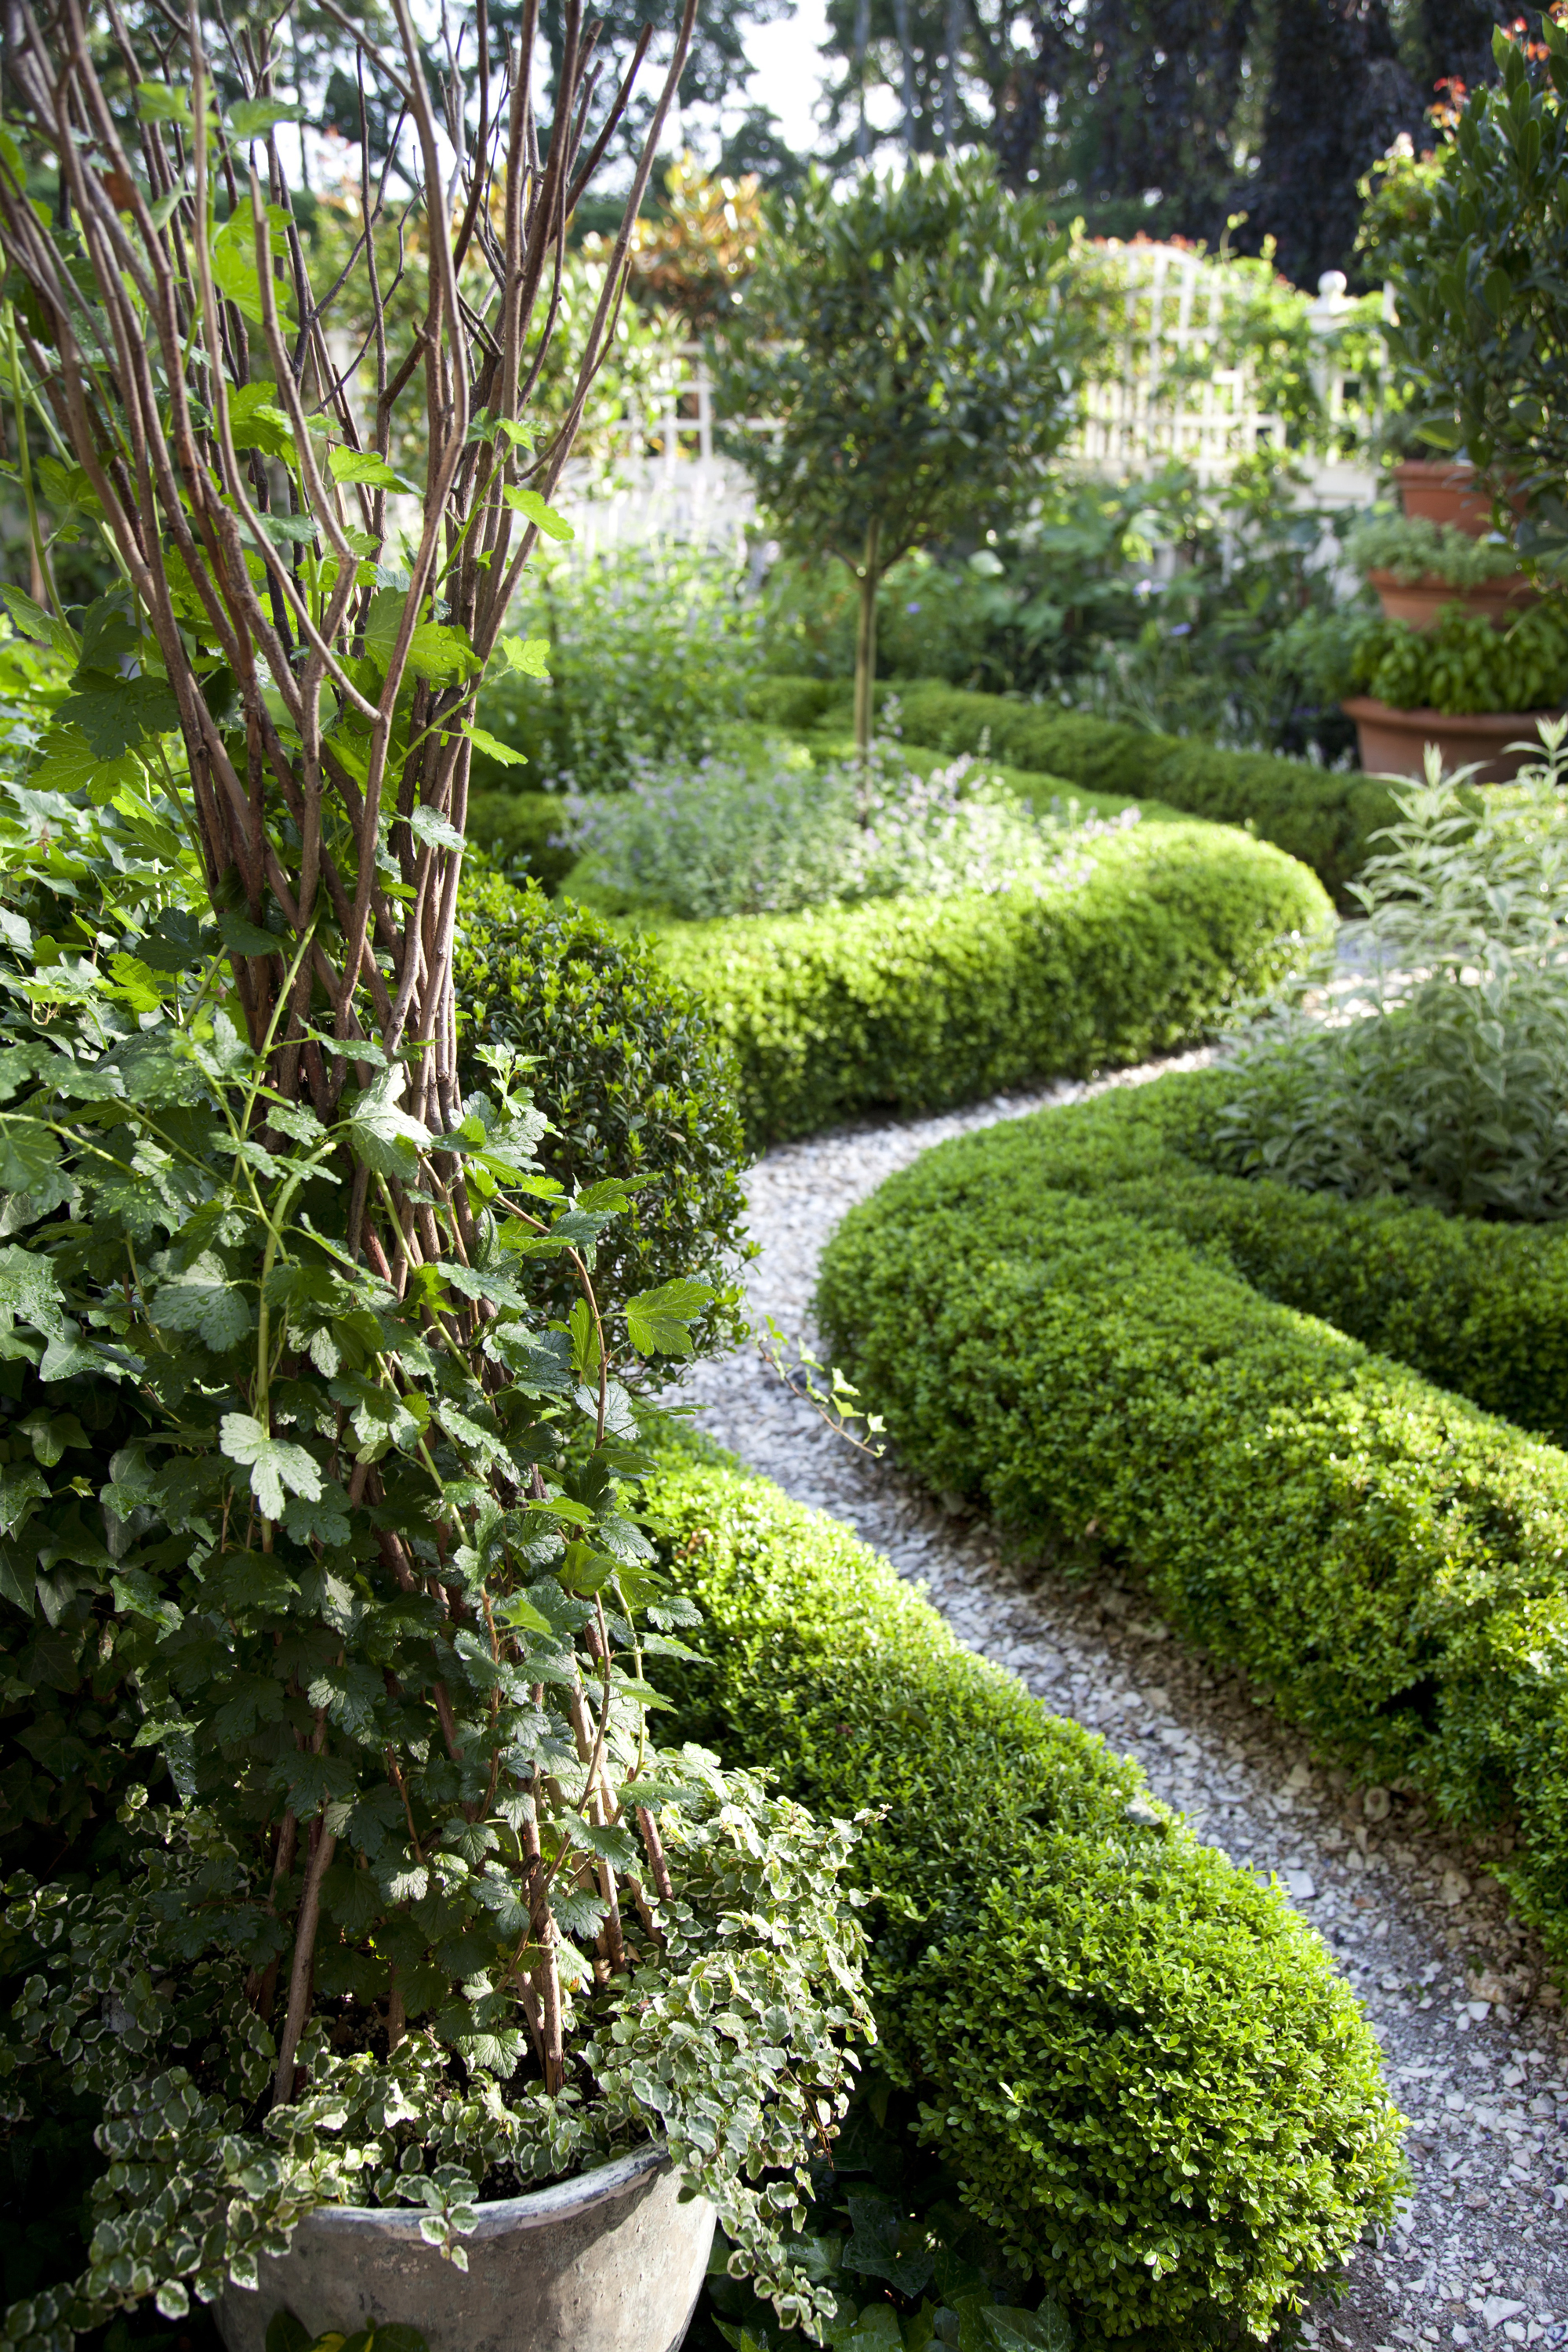 40 front yard and backyard landscaping ideas landscaping designs - Garden Landscaping Design